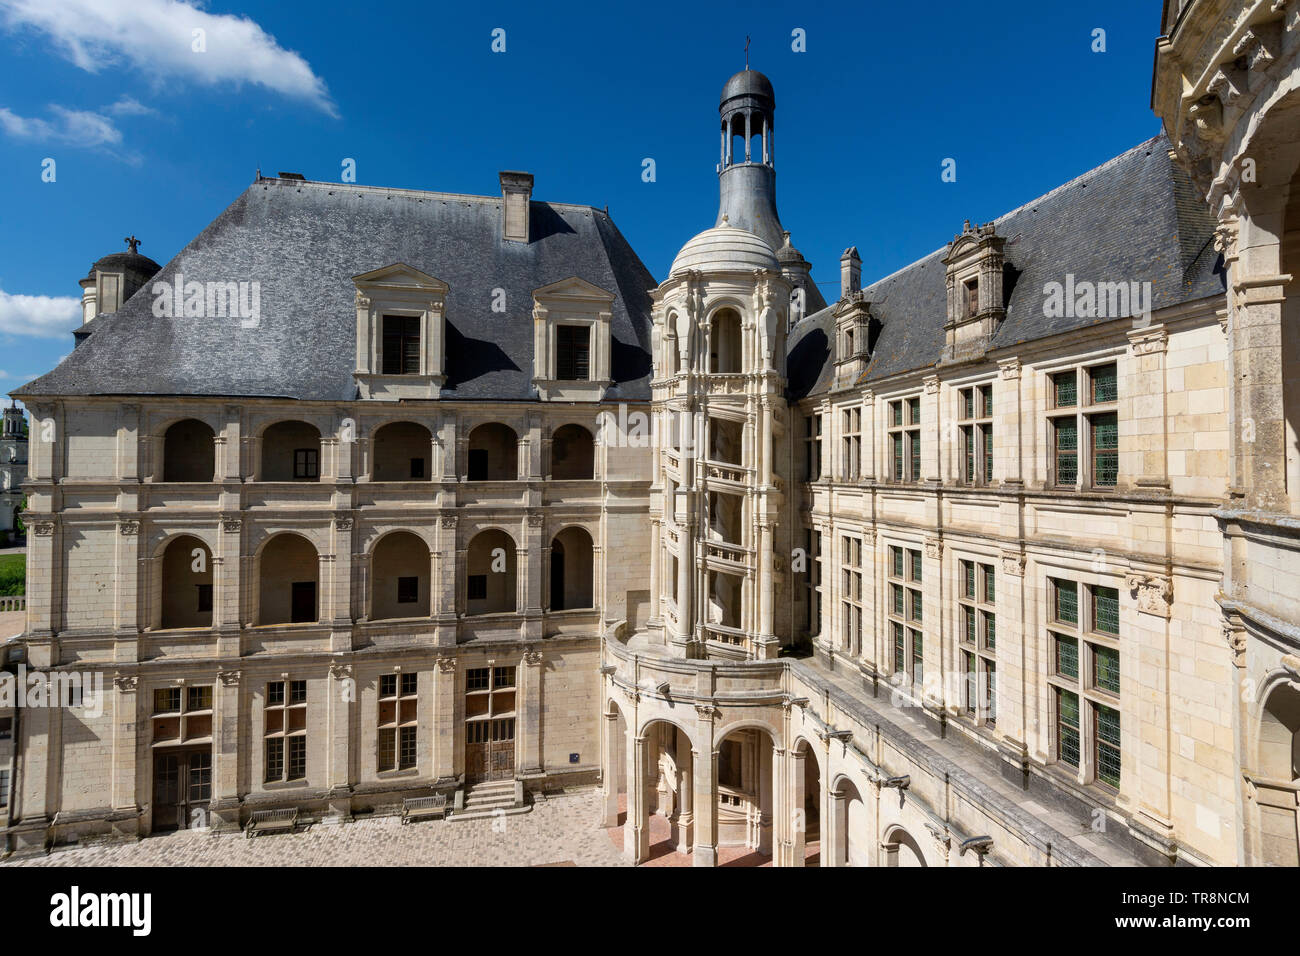 Outside tower of The Royal Chateau at Chambord, , Loire Valley, Loir-et-Cher department, Centre-Val de Loire, France, Europe Stock Photo